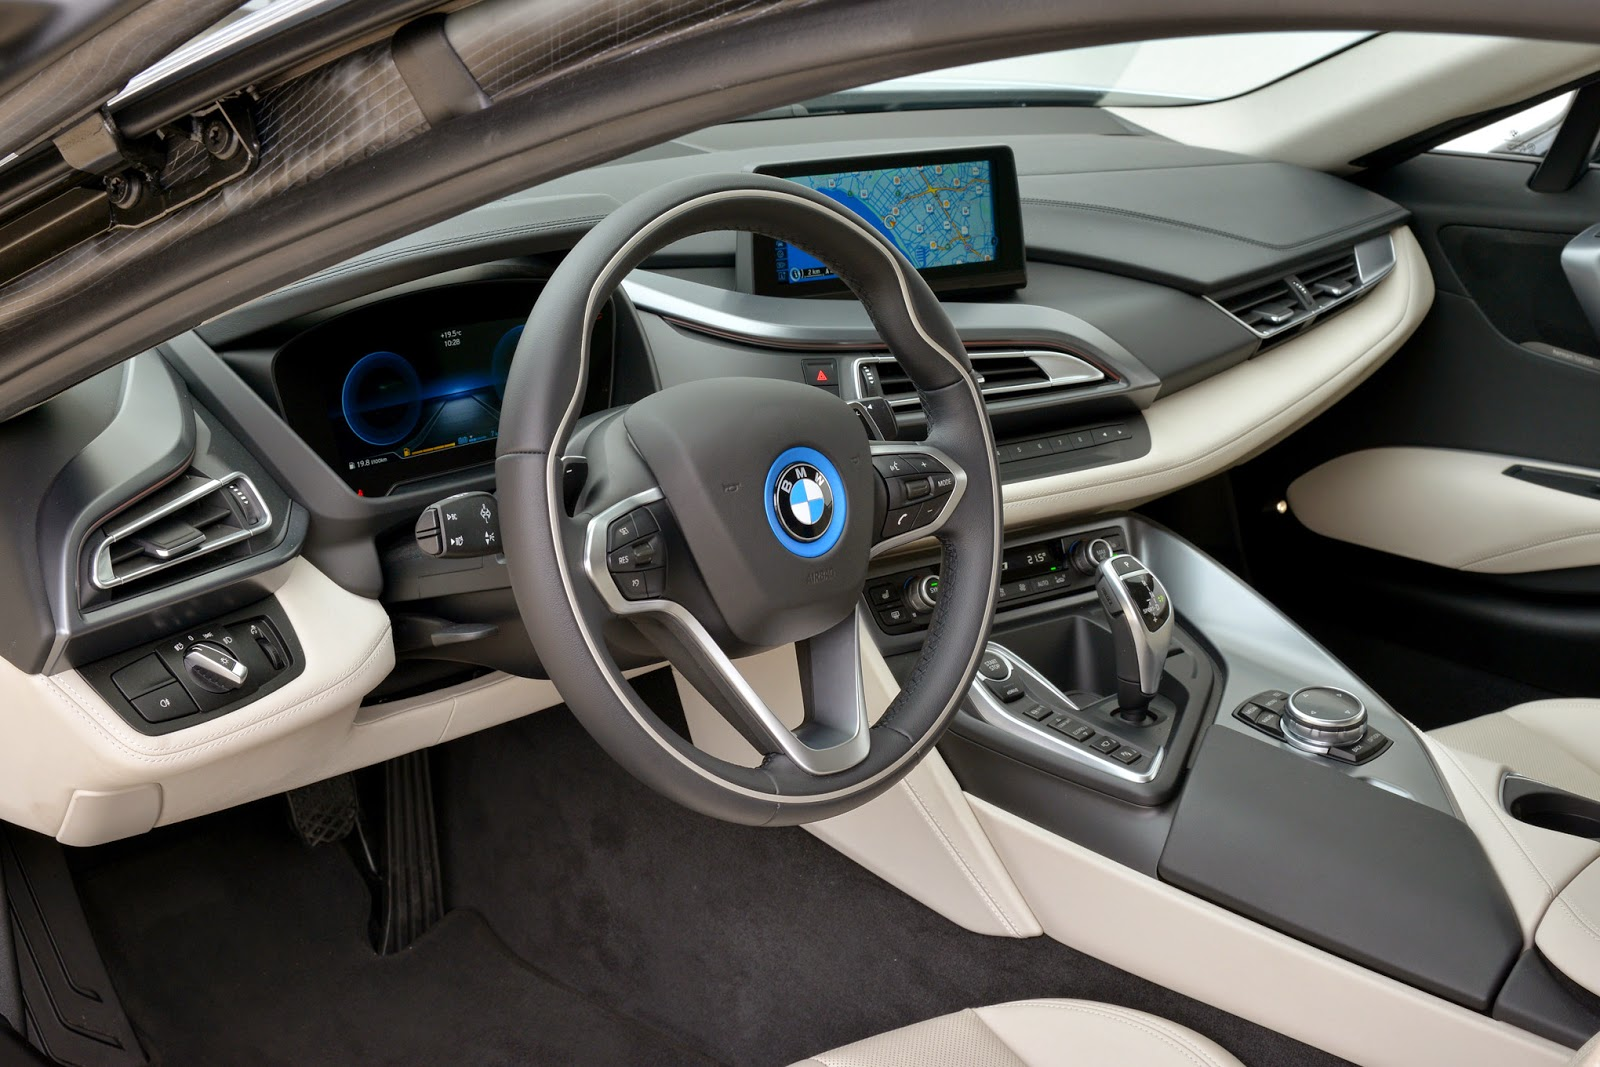 Ford Fusion Forum View Picture Wheels 2013 Interior Pictures India - small